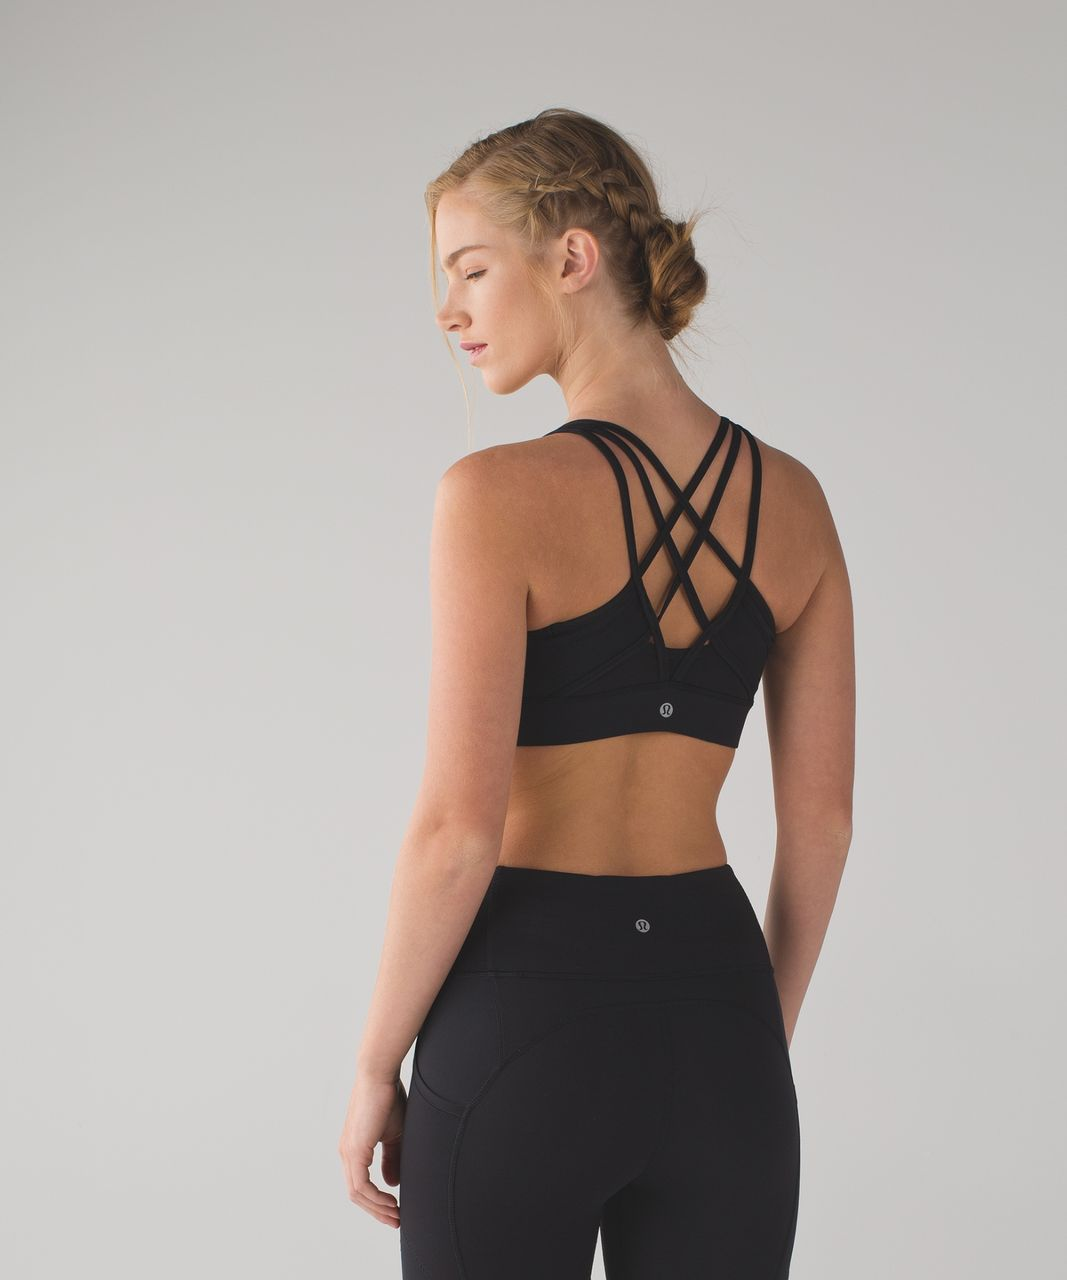 Lululemon Strap It Like Its Hot Bra - Black